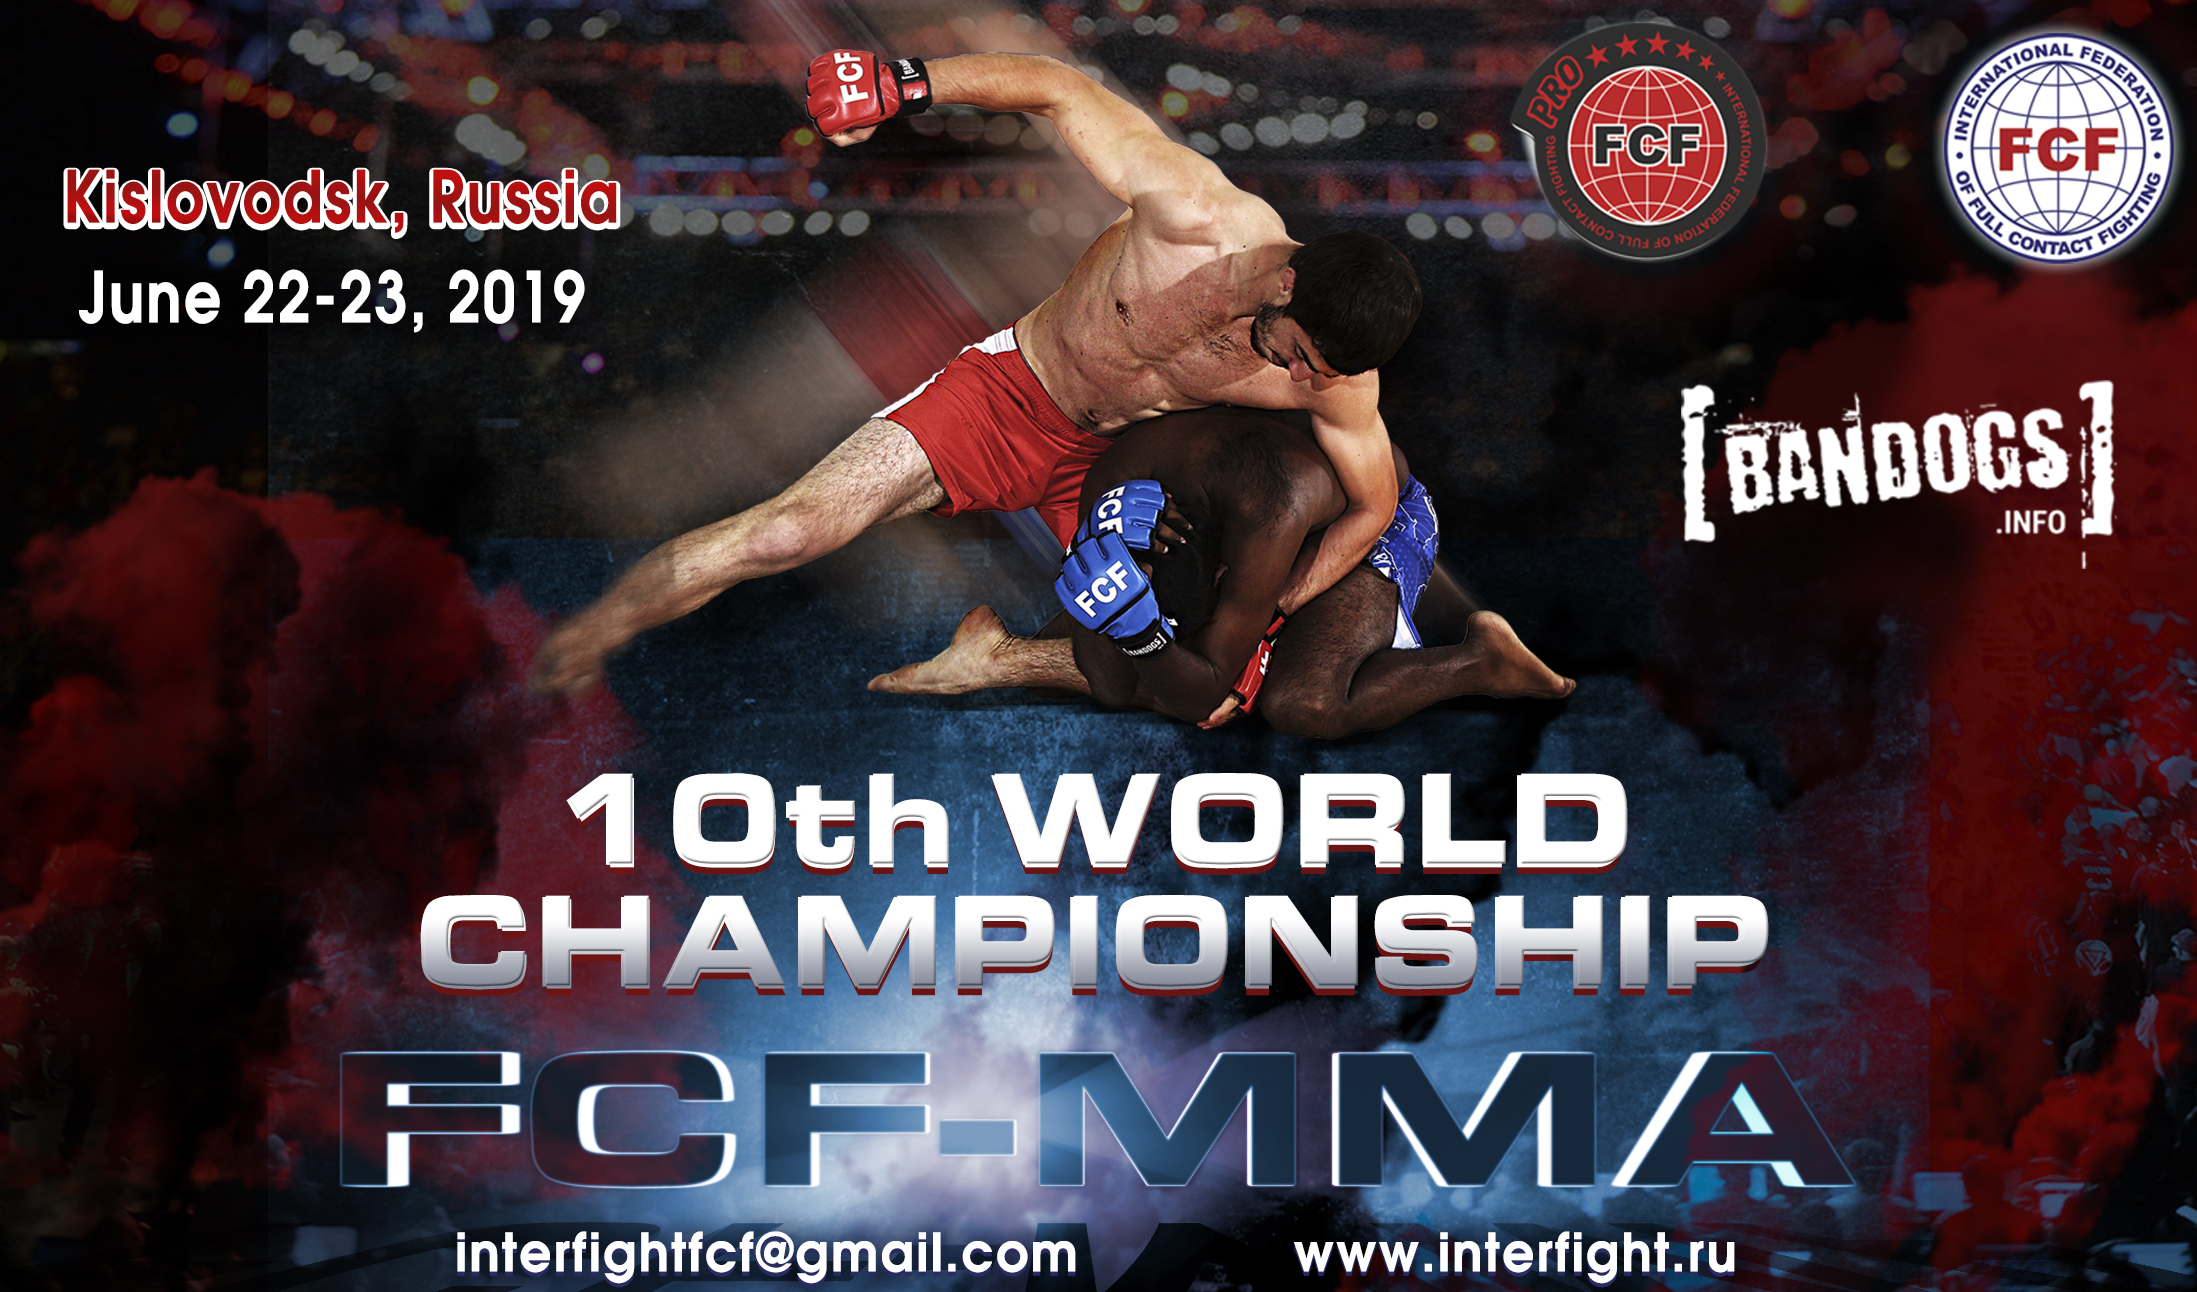 10th World Championship FCF-MMA 2019